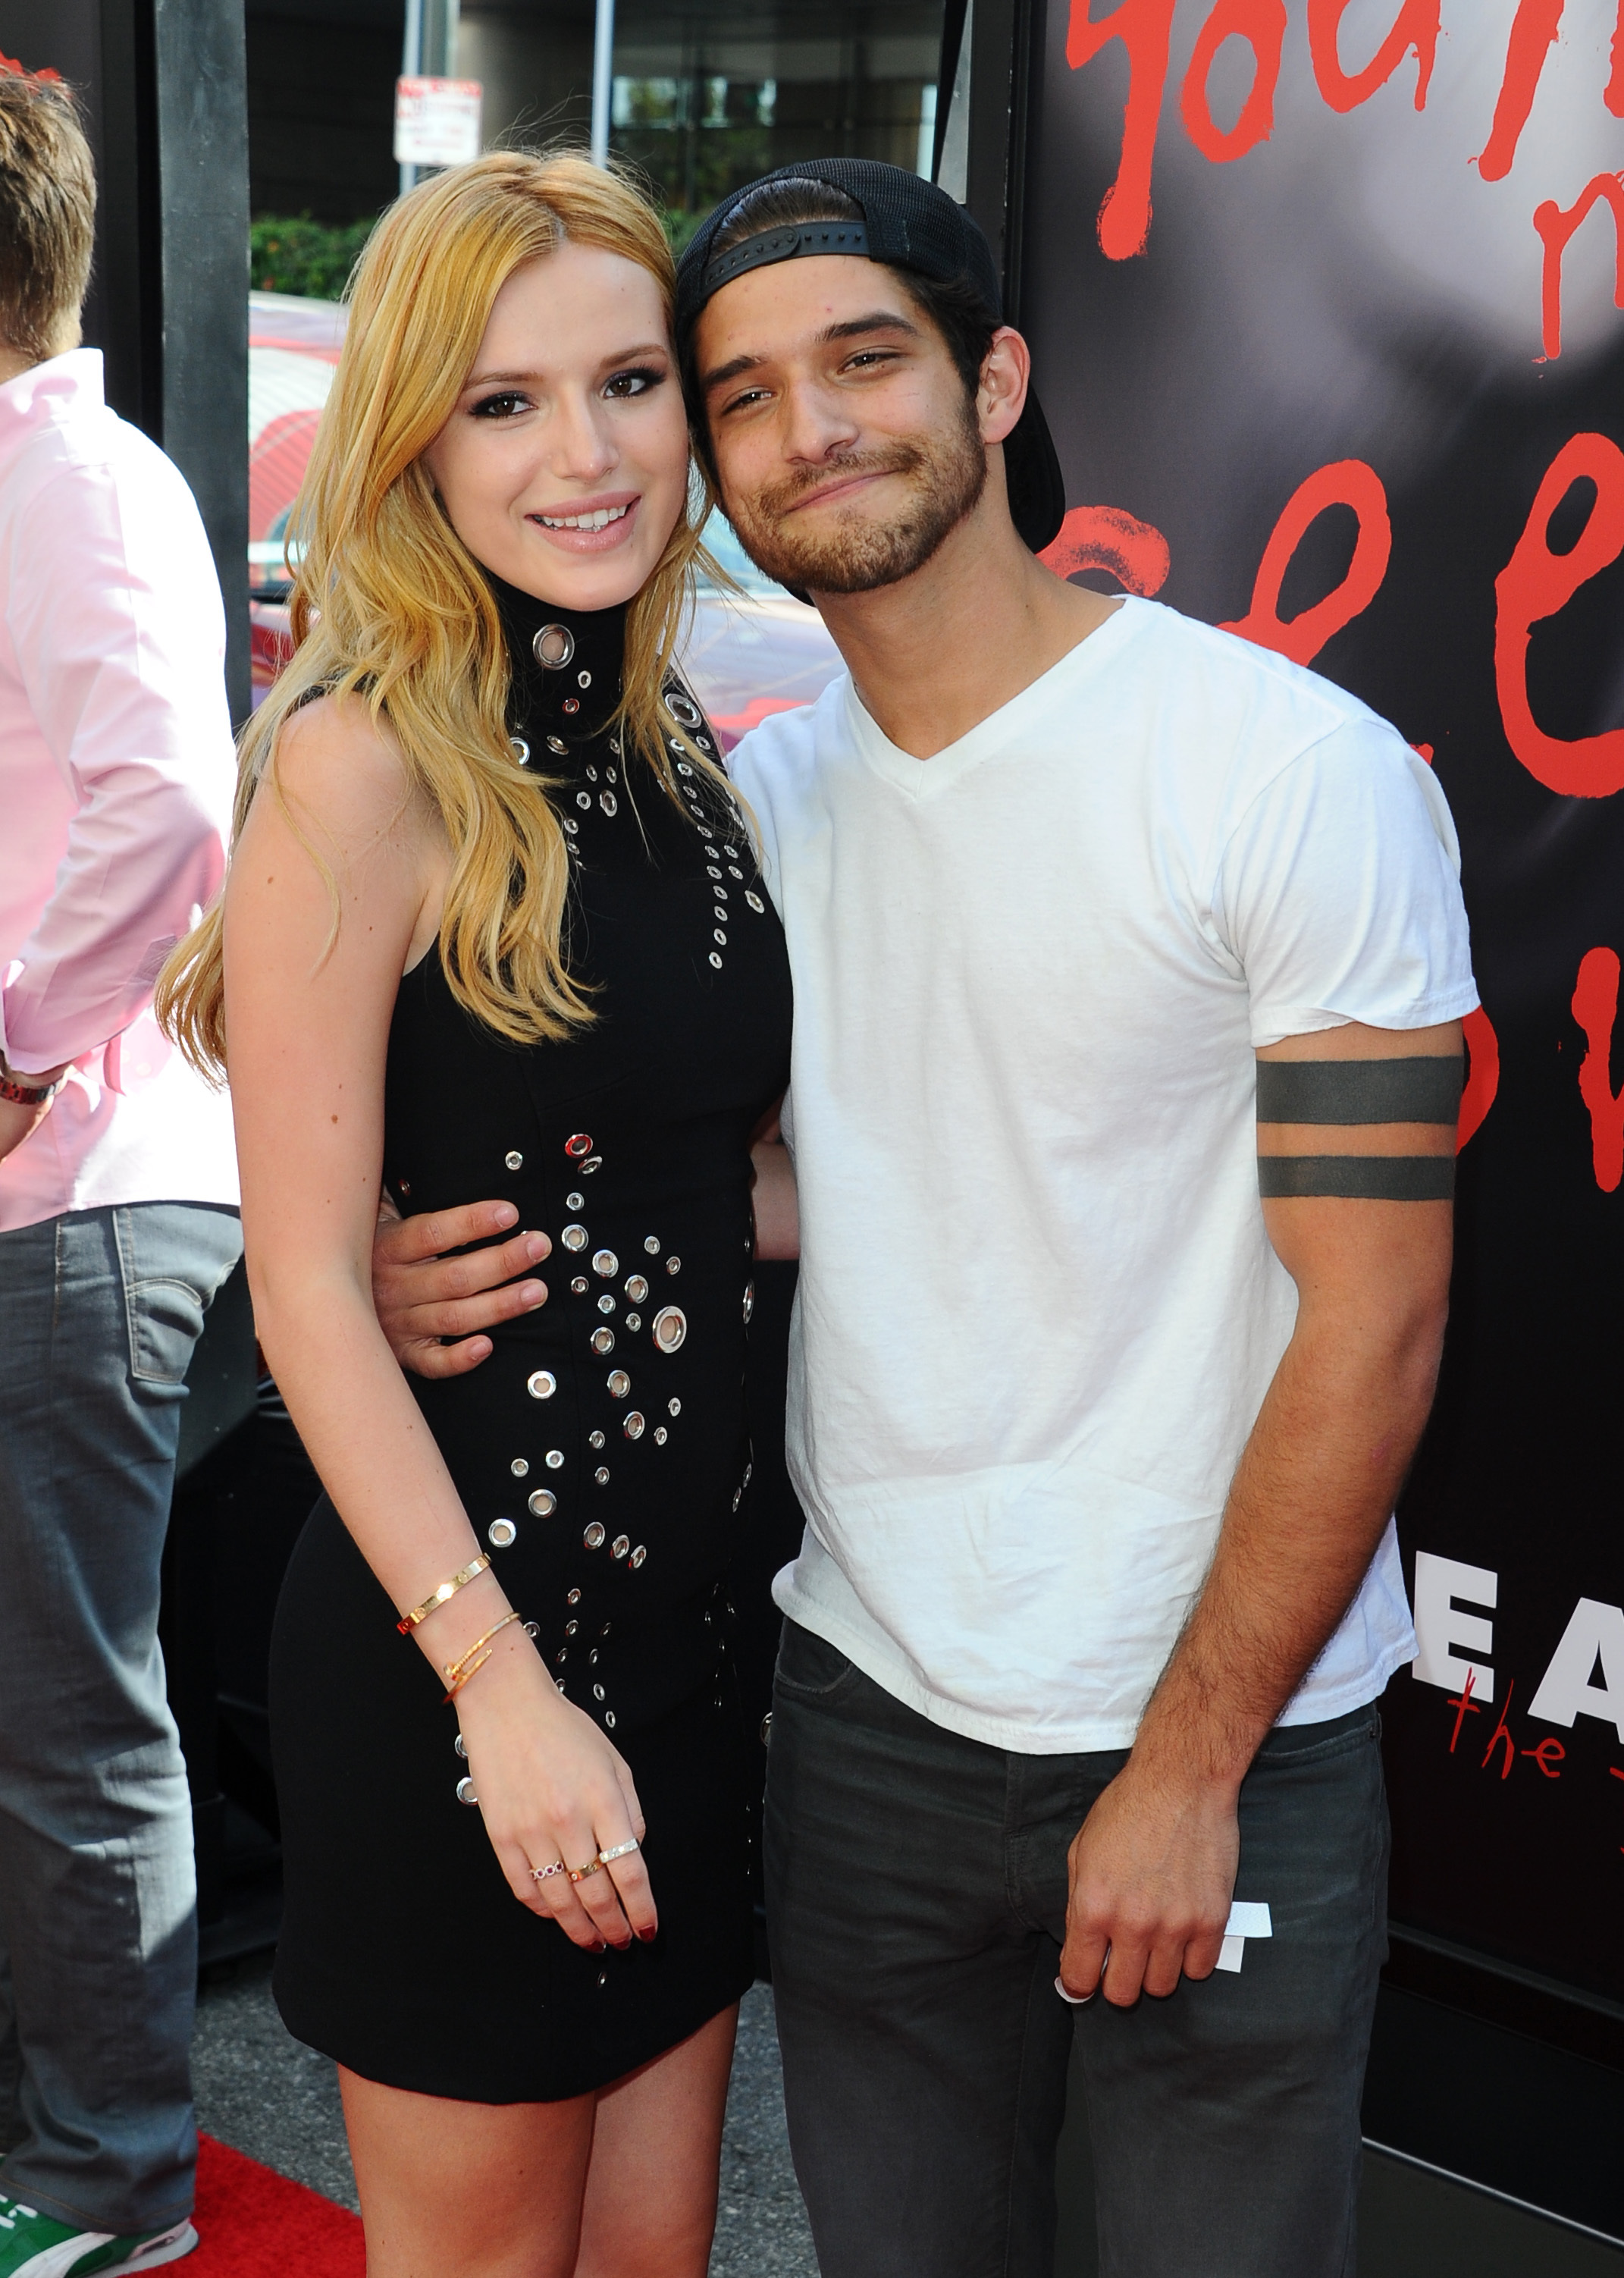 Bella Thorne and Tyler Posey attend the Scream TV series premiere at the Los Angeles Film Festival in Los Angeles on June 14, 2015.